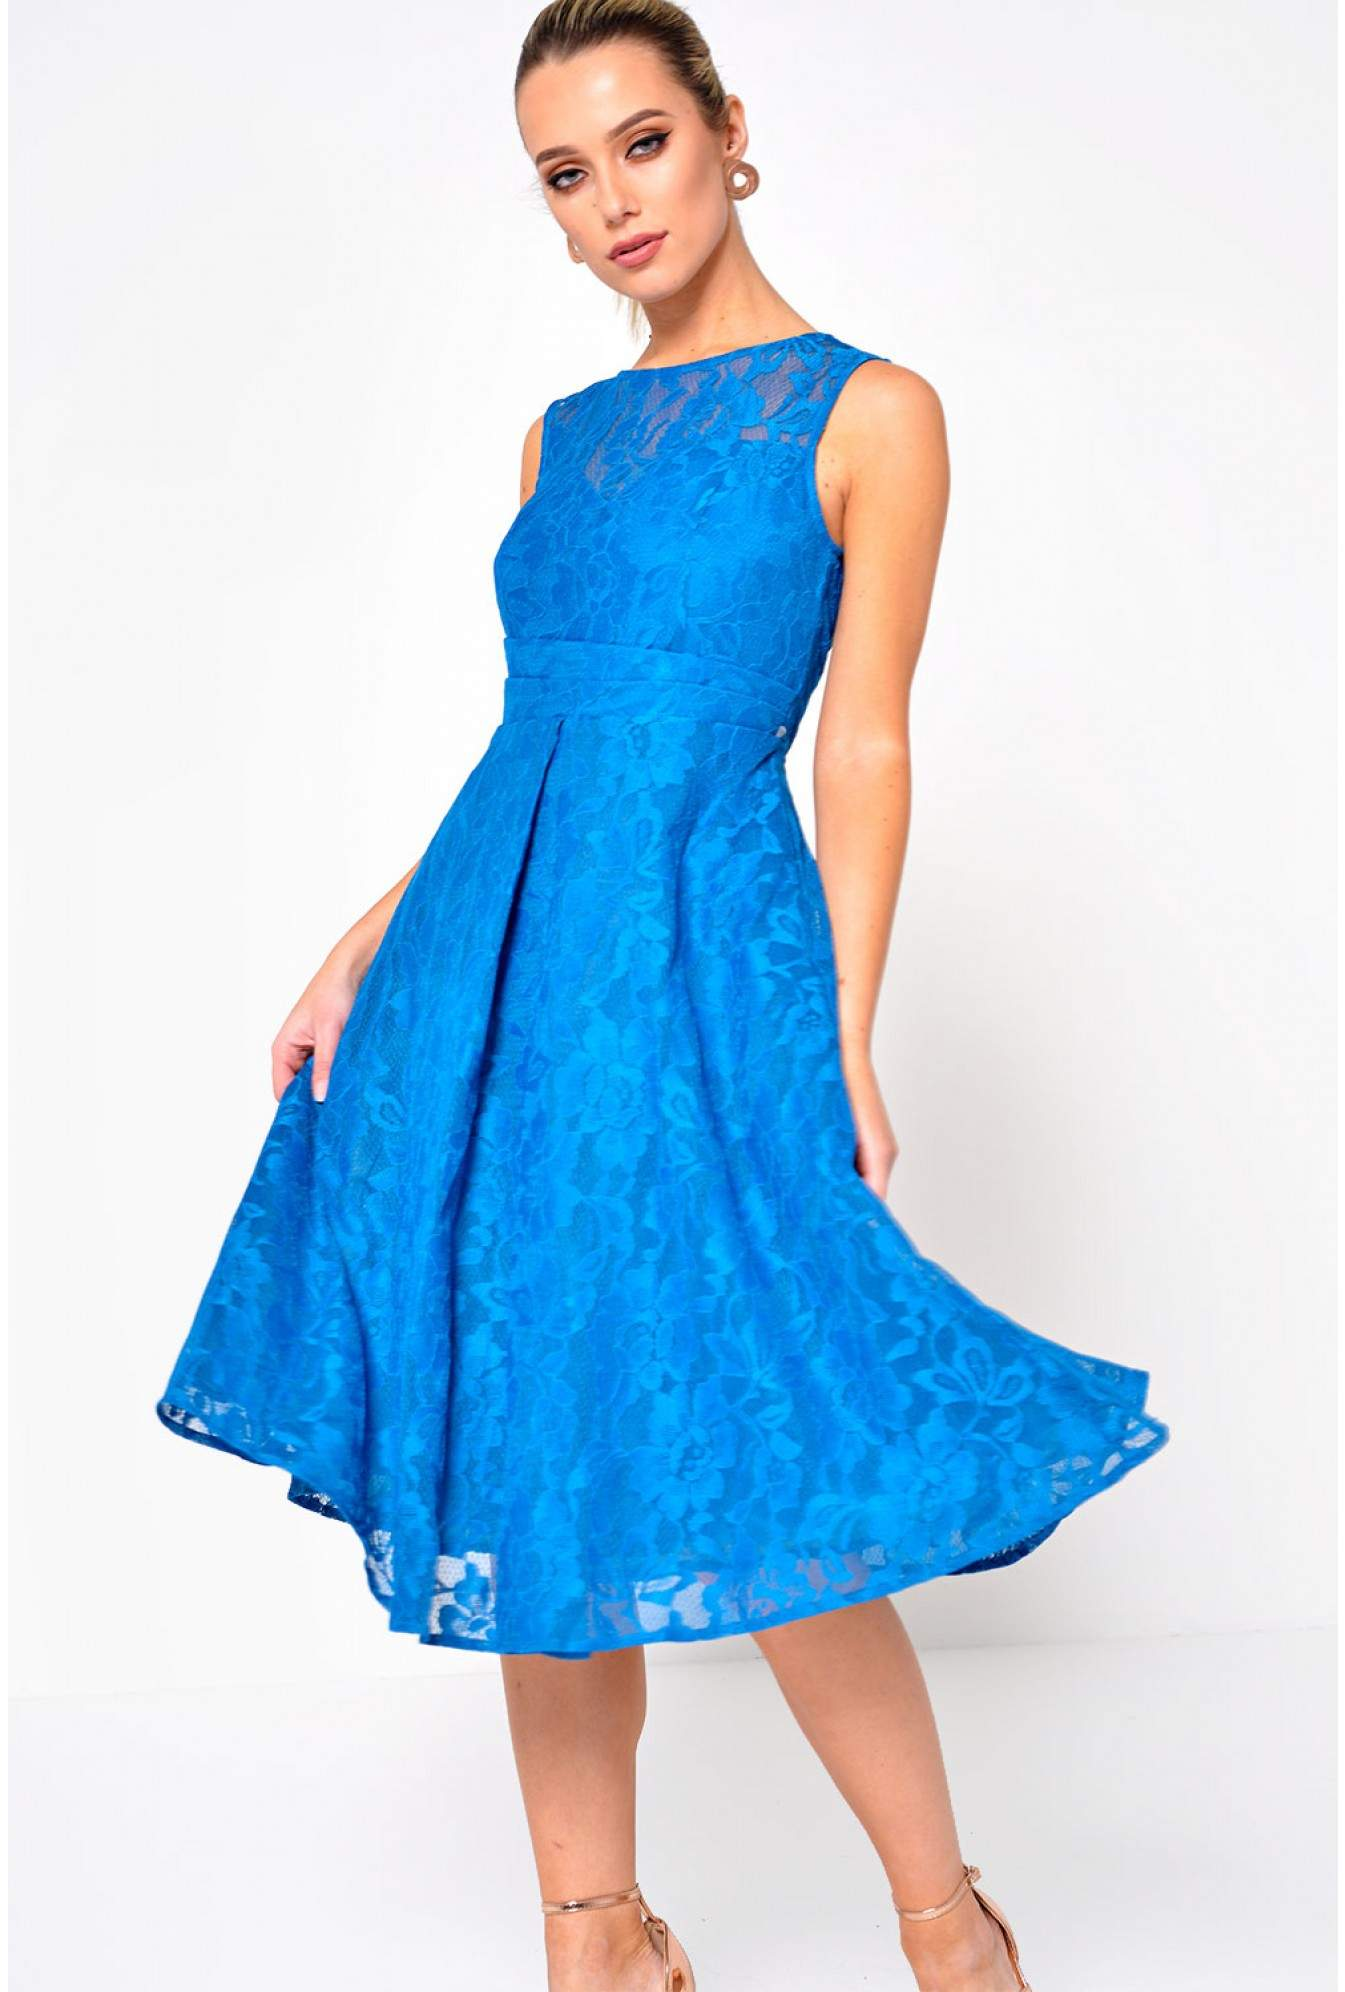 f8665099b8186 Jolie Moi Karlie Lace Skater Dress in Teal | iCLOTHING